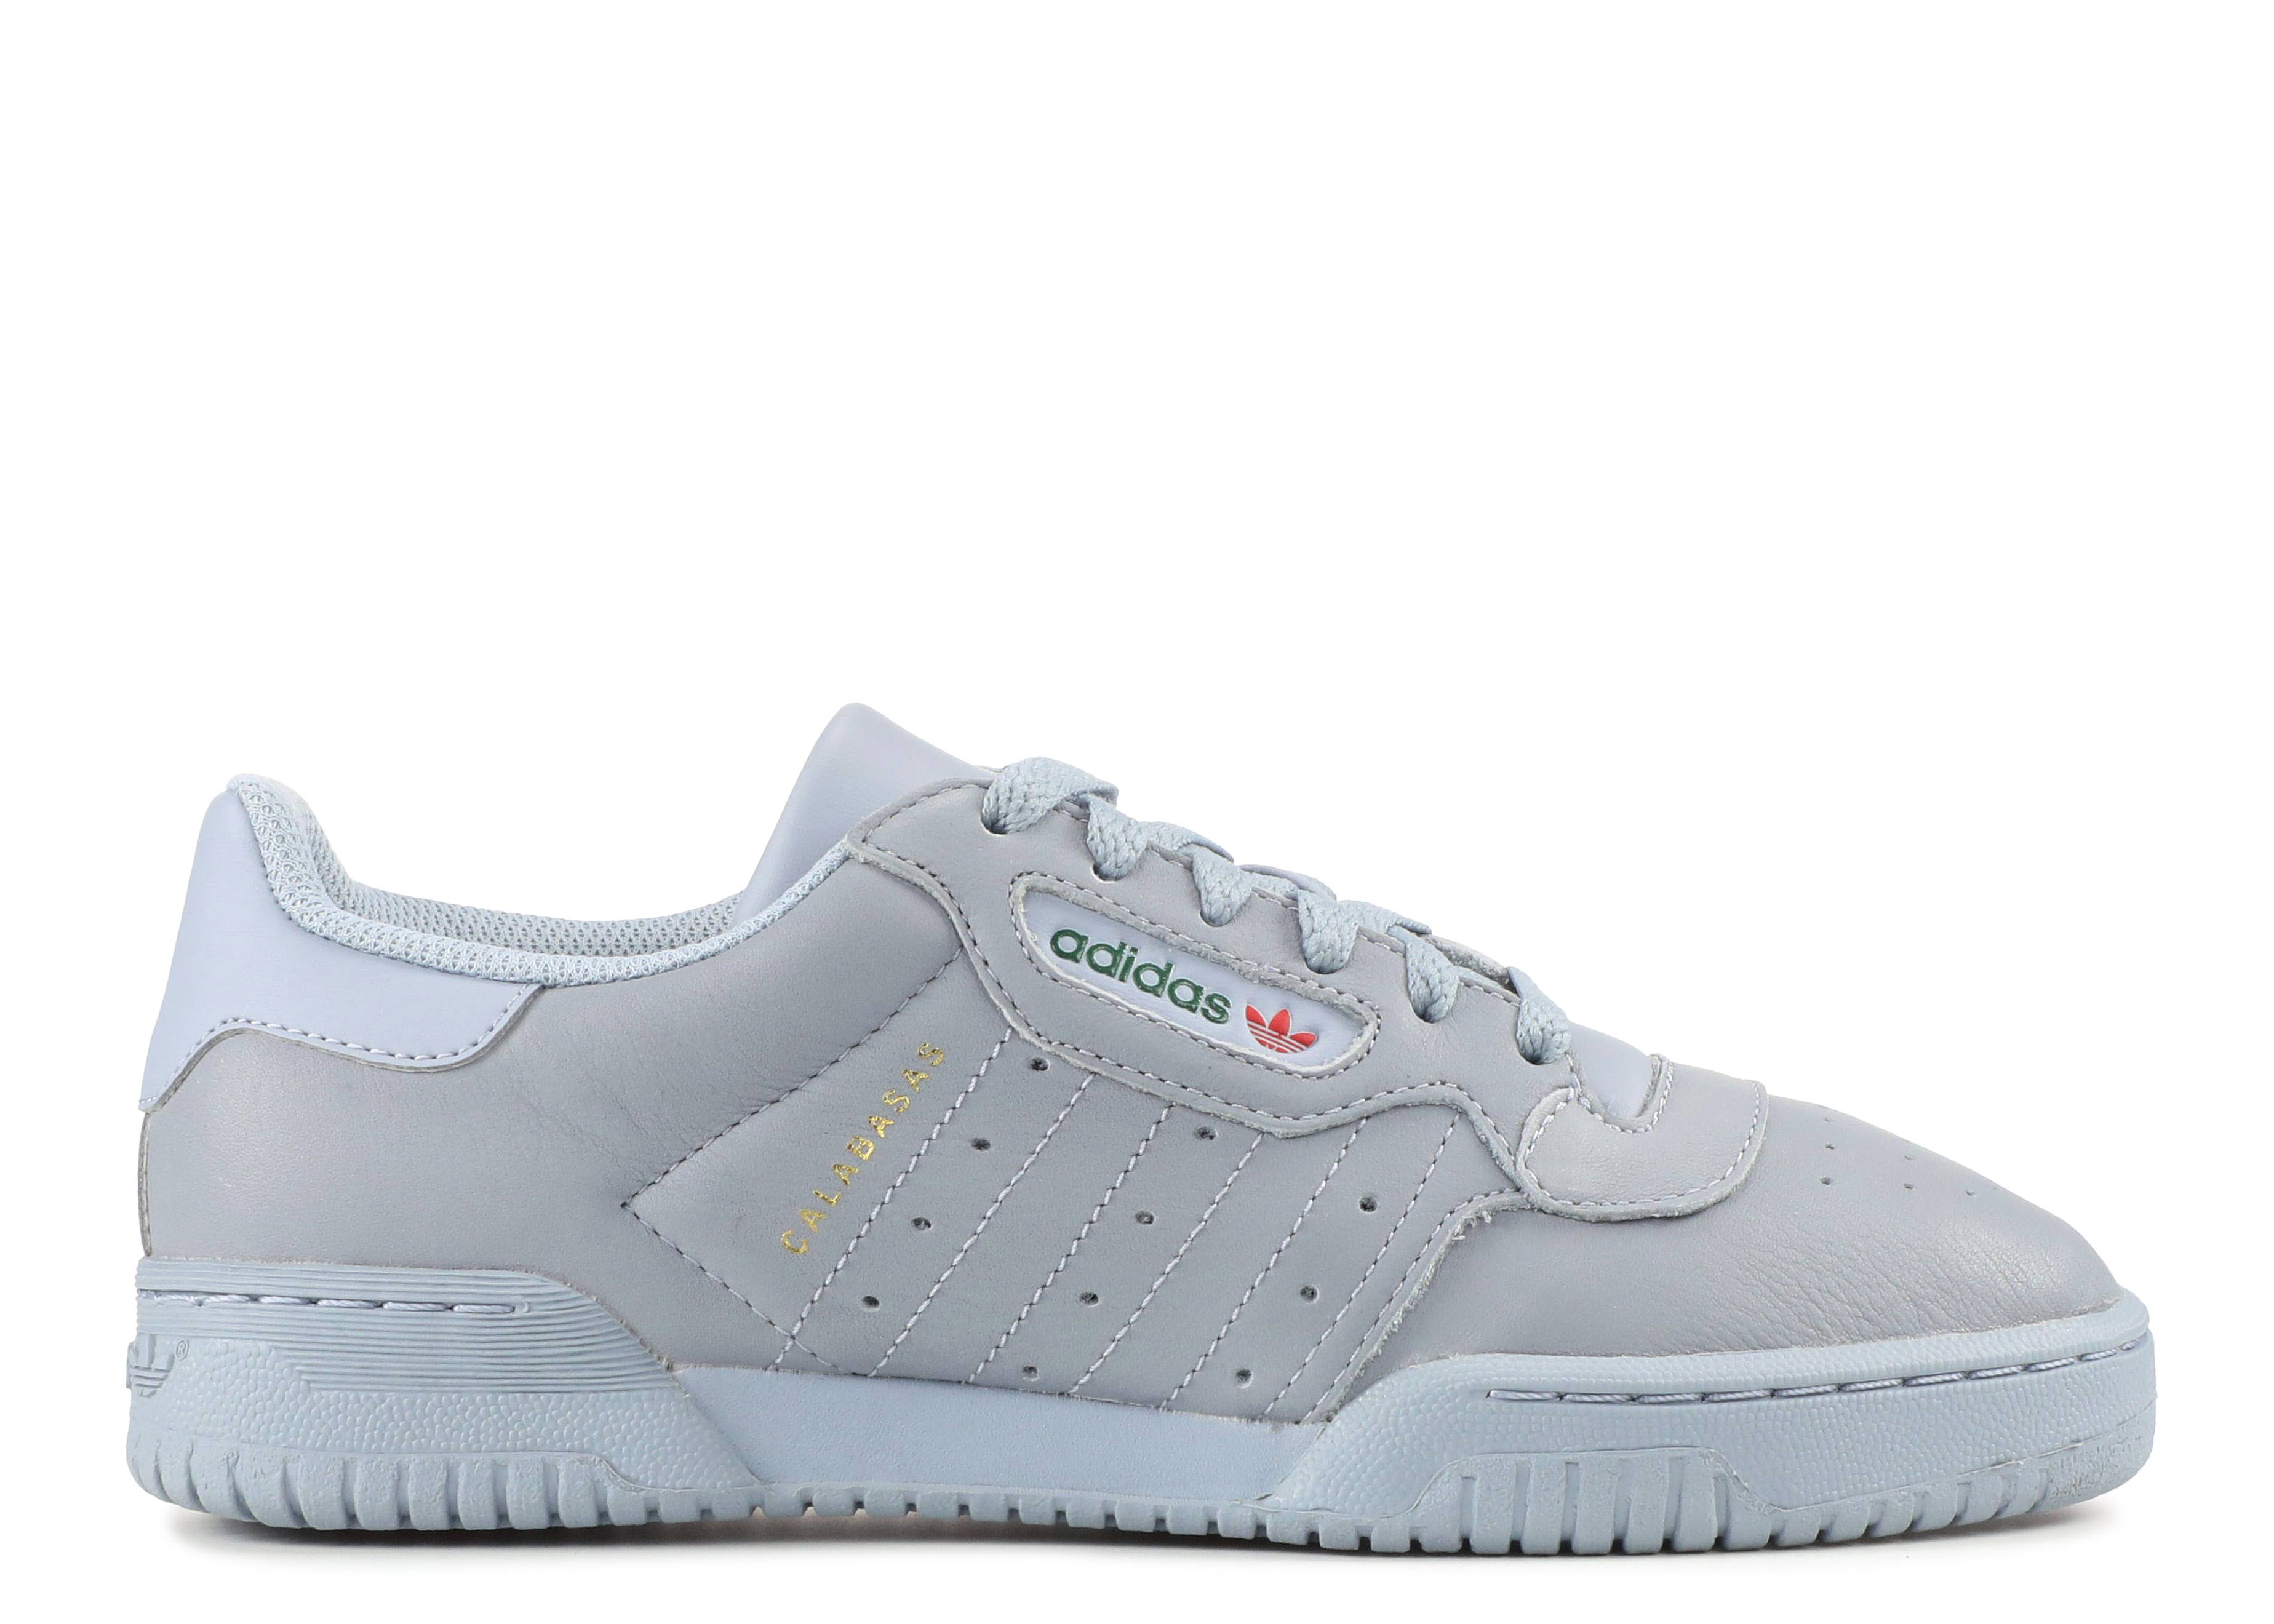 new product 49d9a dcd57 Yeezy Powerphase